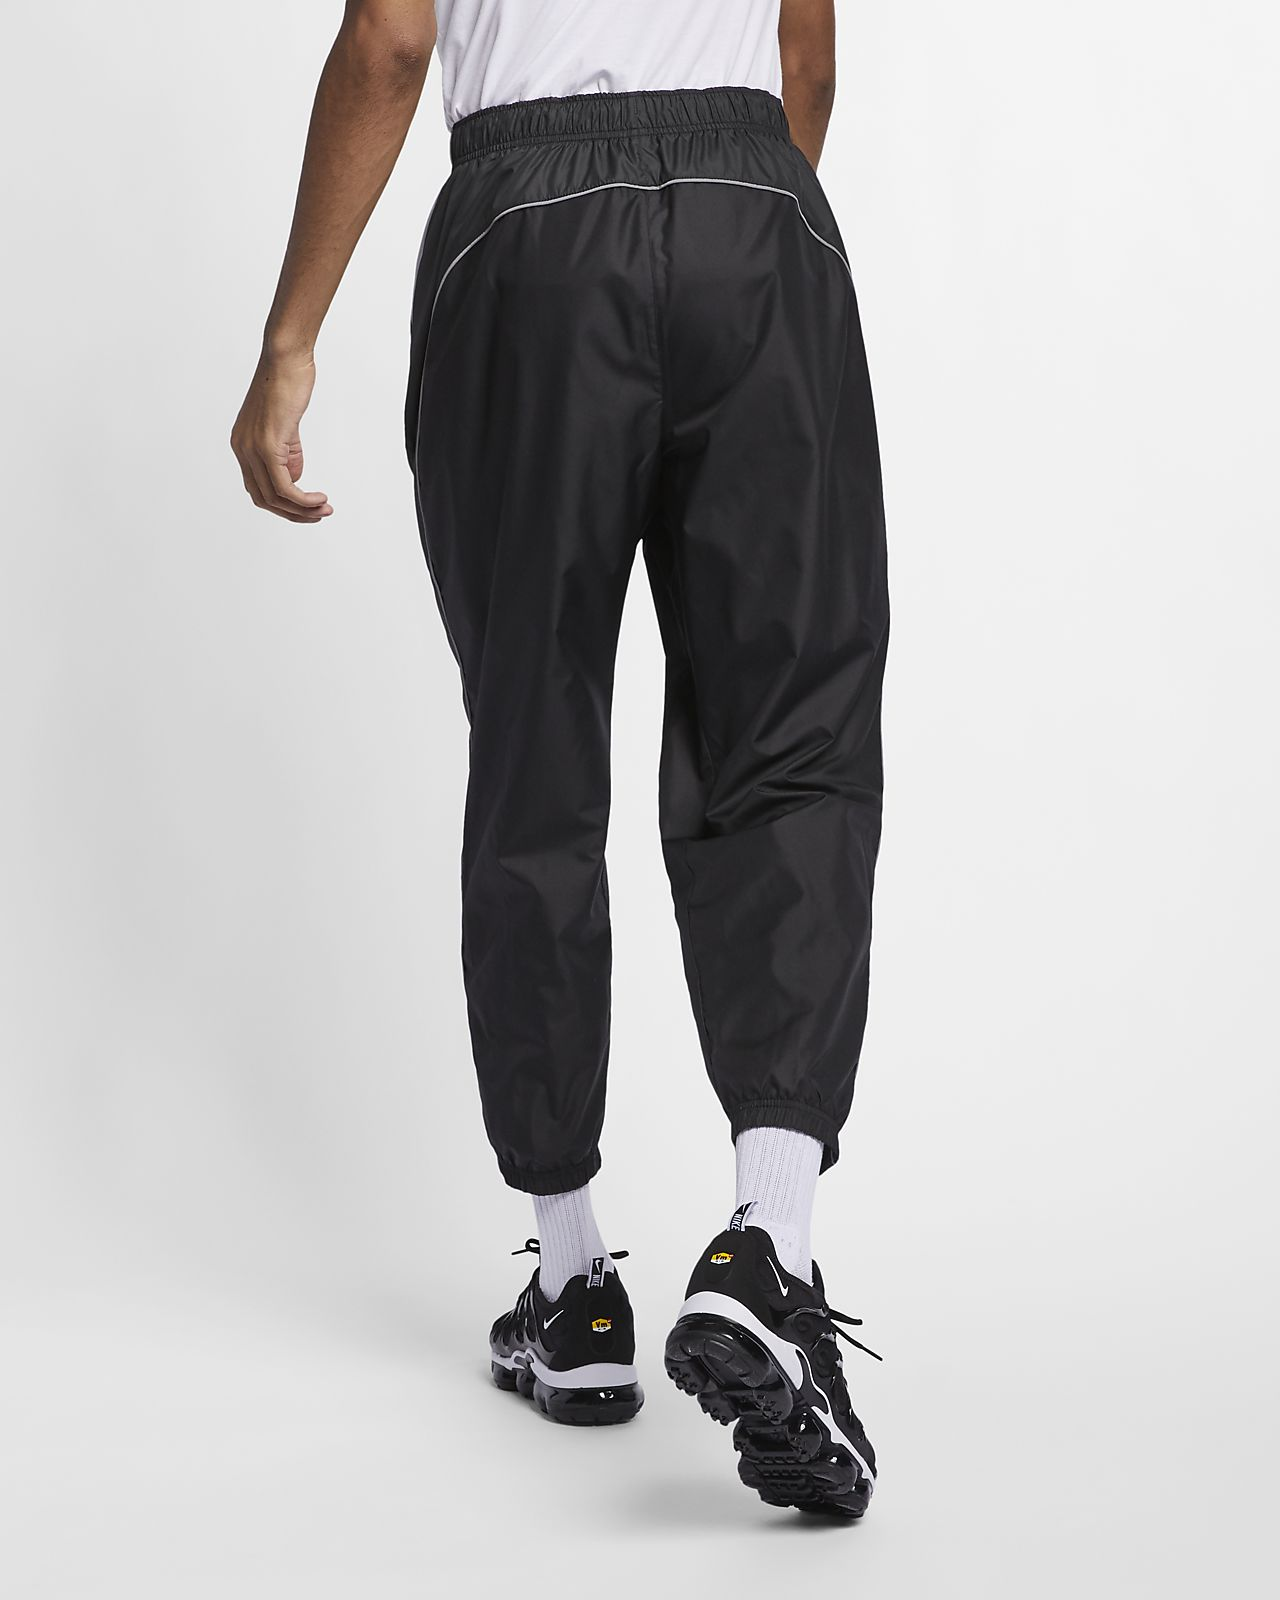 NikeLab Collection Tn løpebukse til herre